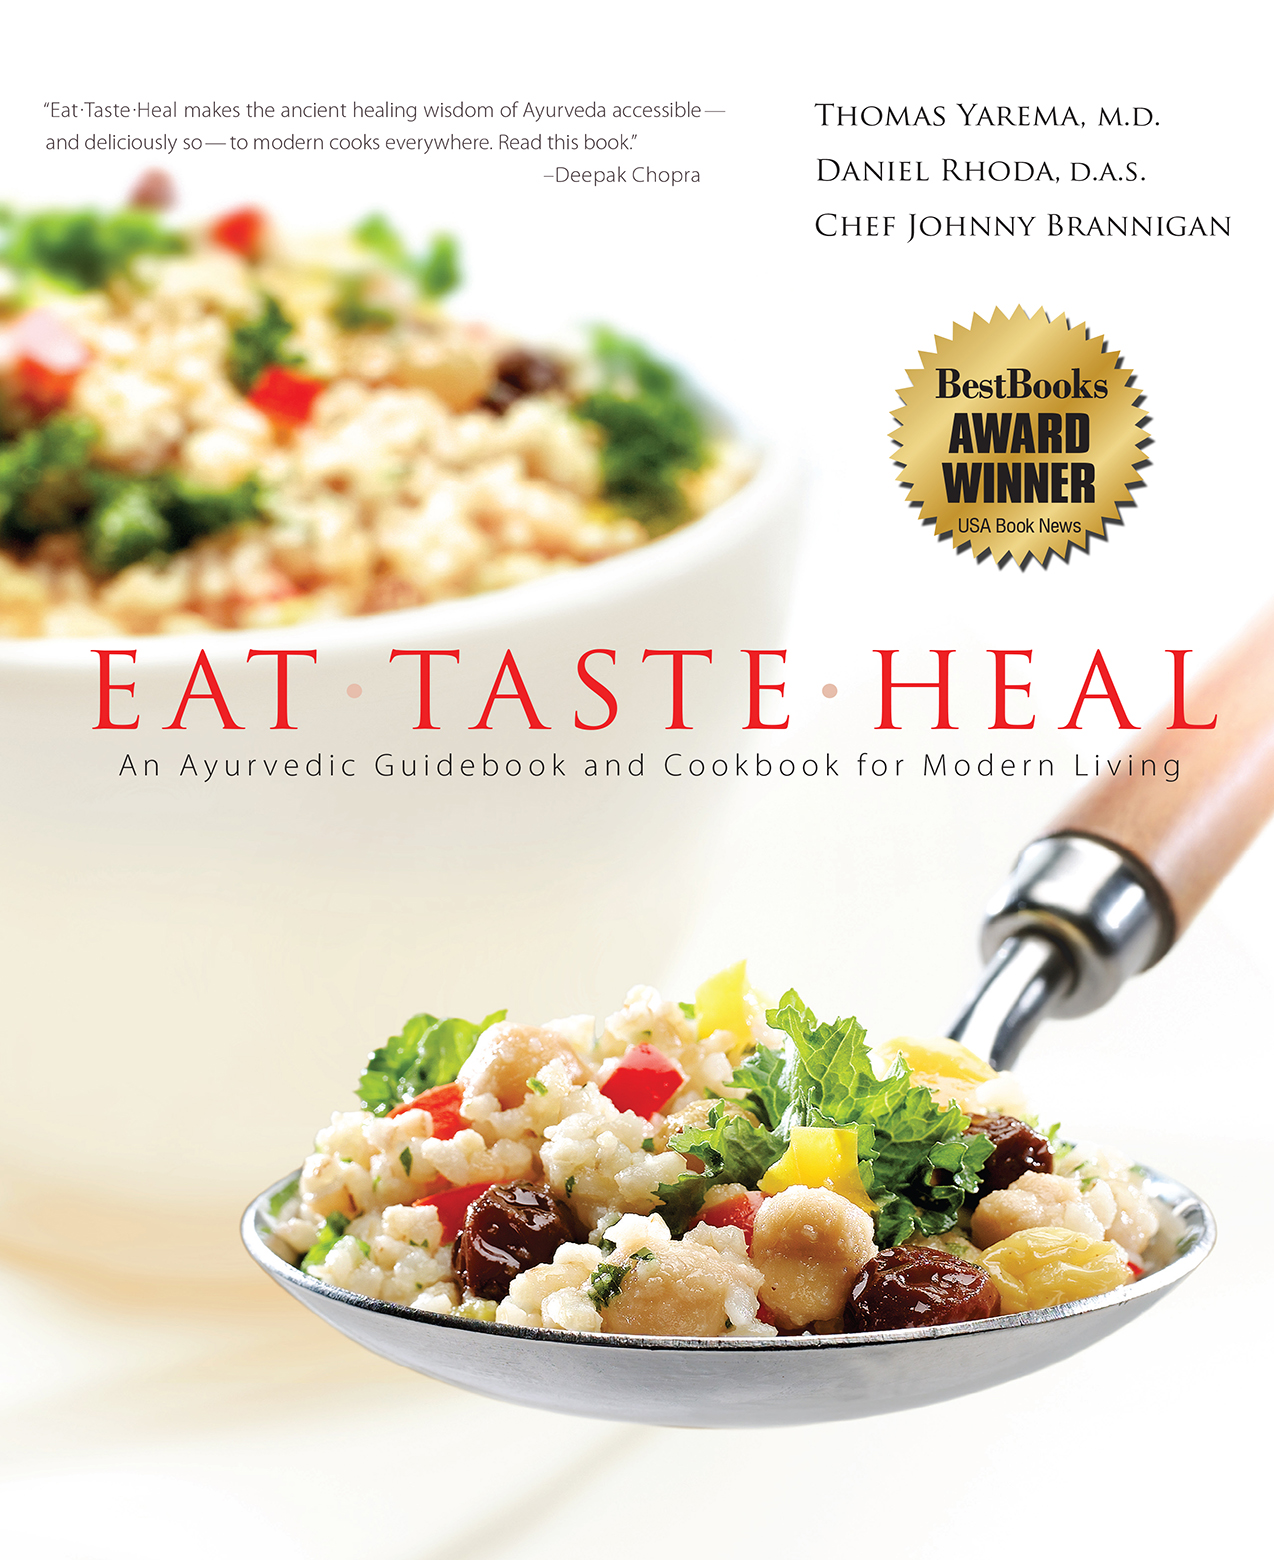 EAT TASTE HEAL: An Ayurvedic Cookbook for Modern Living